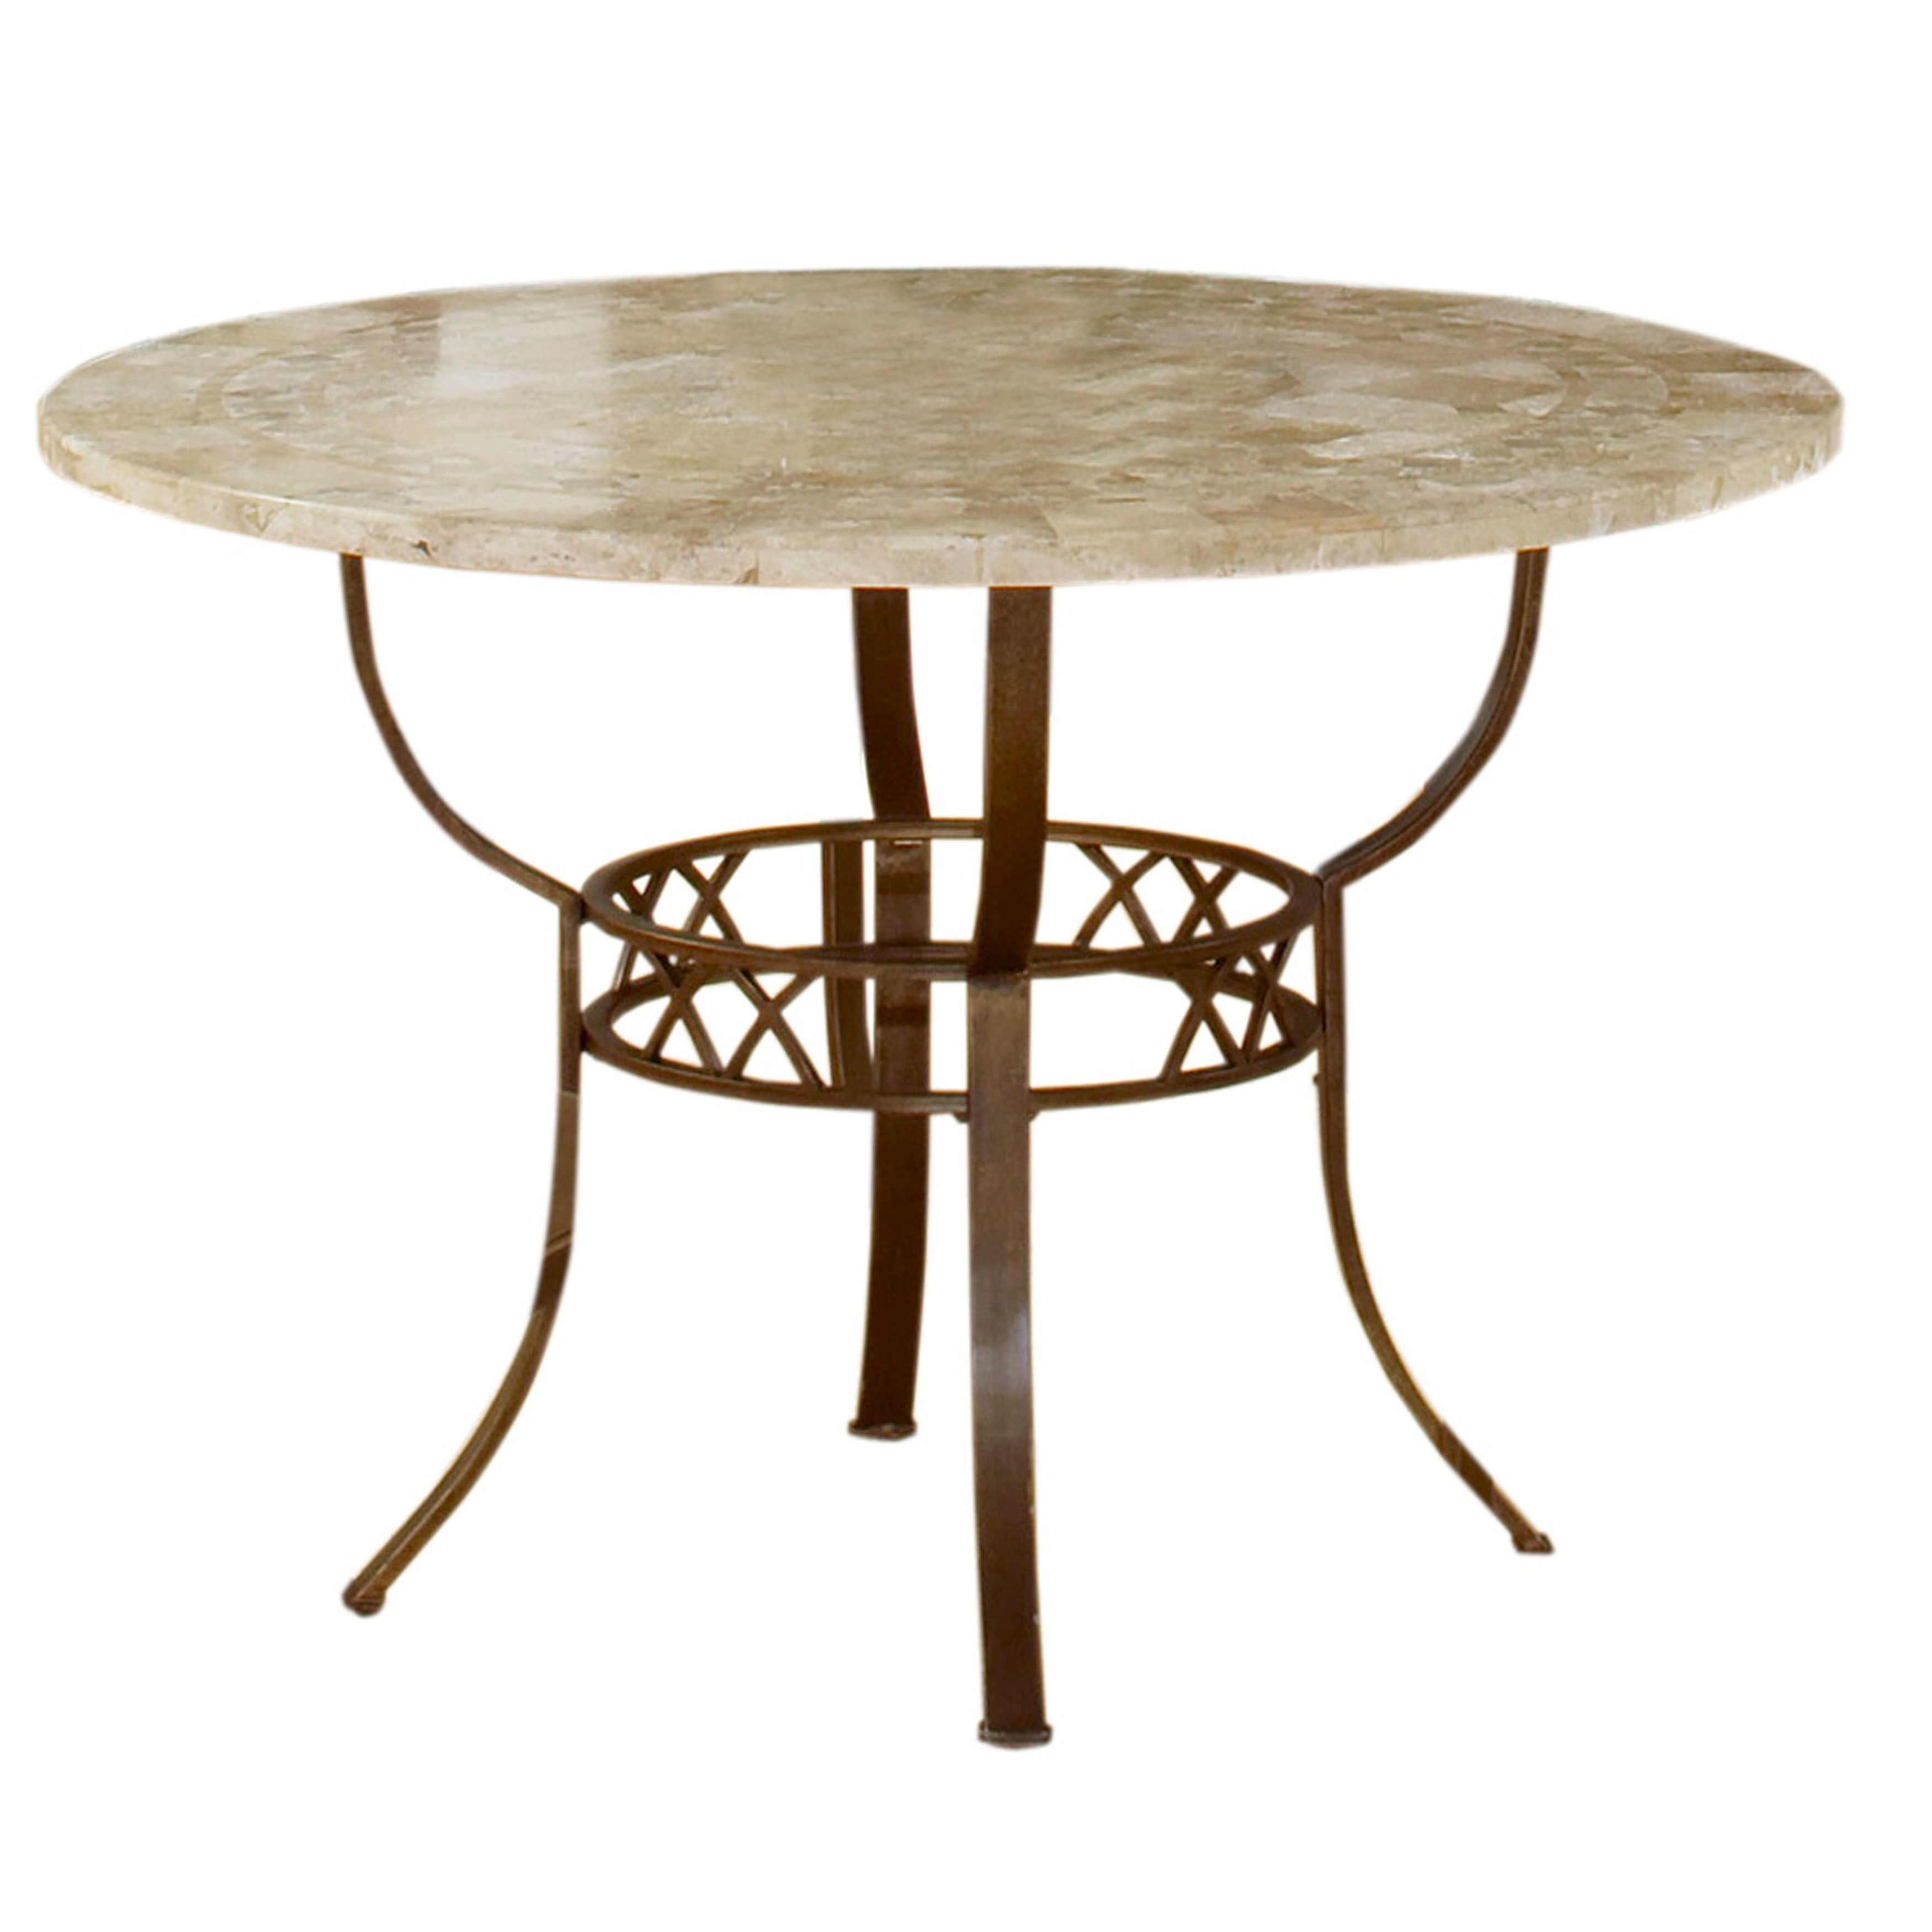 Shop hillsdale furniture brookside ivory and brown powder coated round table free shipping today overstock com 16294973